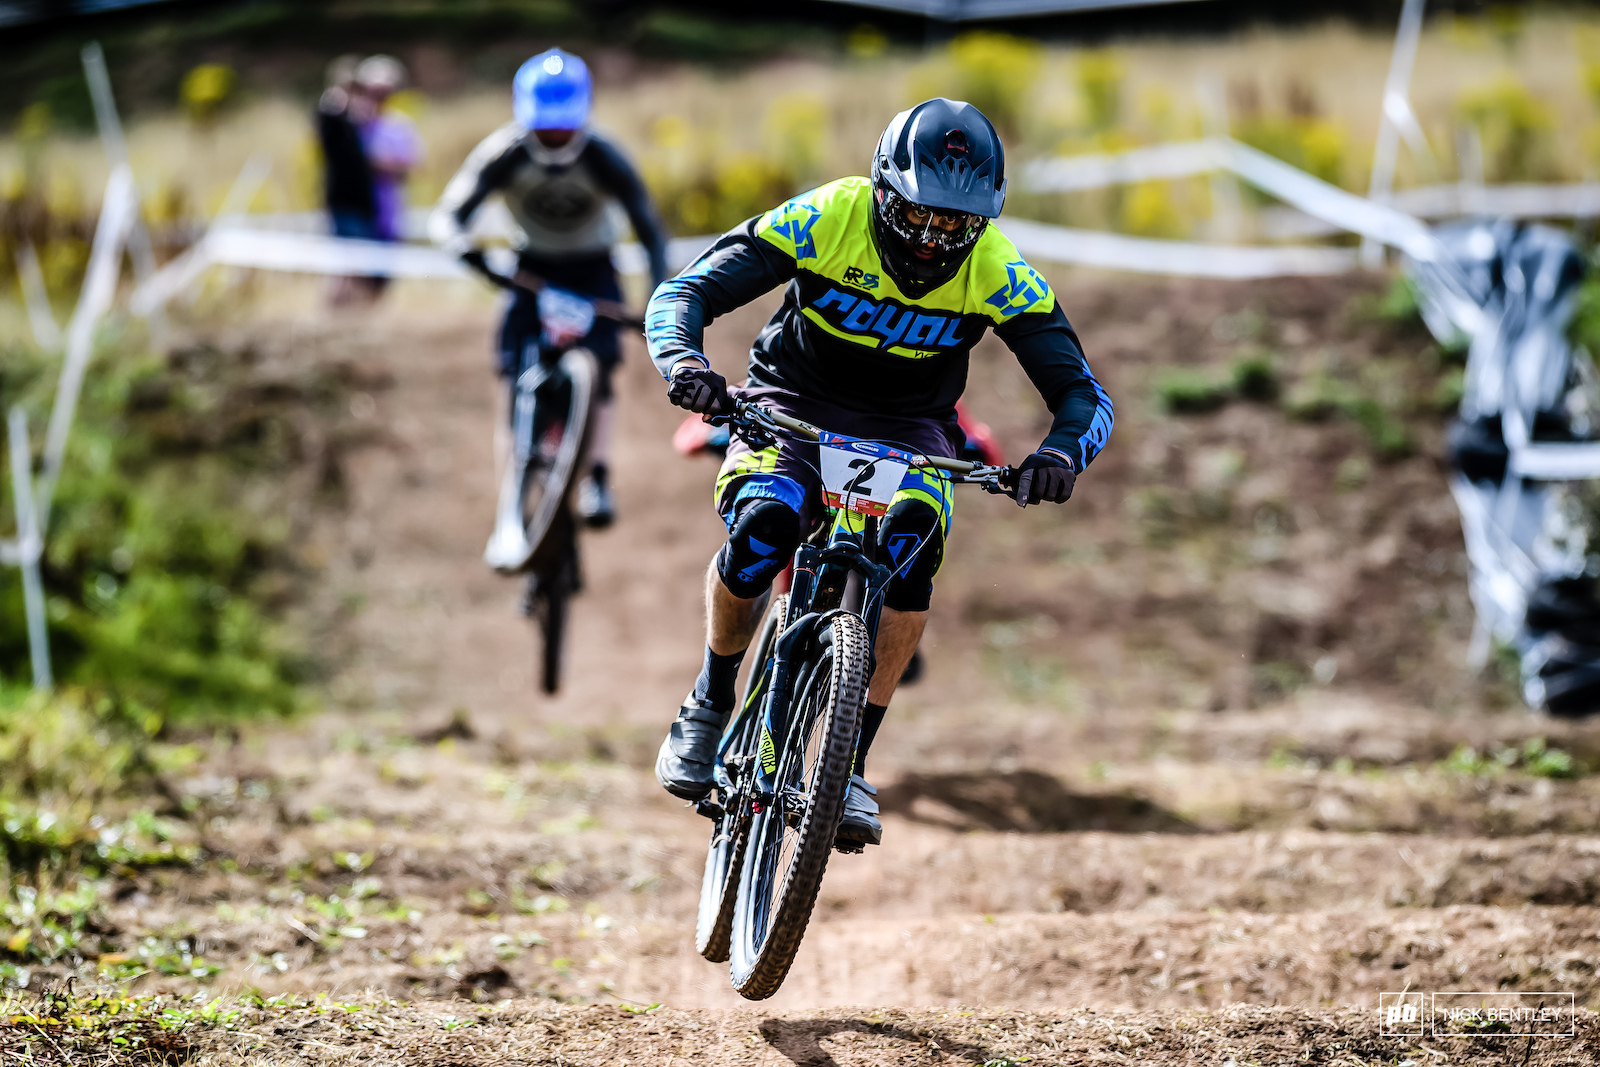 Davi Robberts on it through the whoops. A amazing qualifying result for Davi of 3rd but it wasn t to be this year with Davi ending up in 5th in the senior men s field